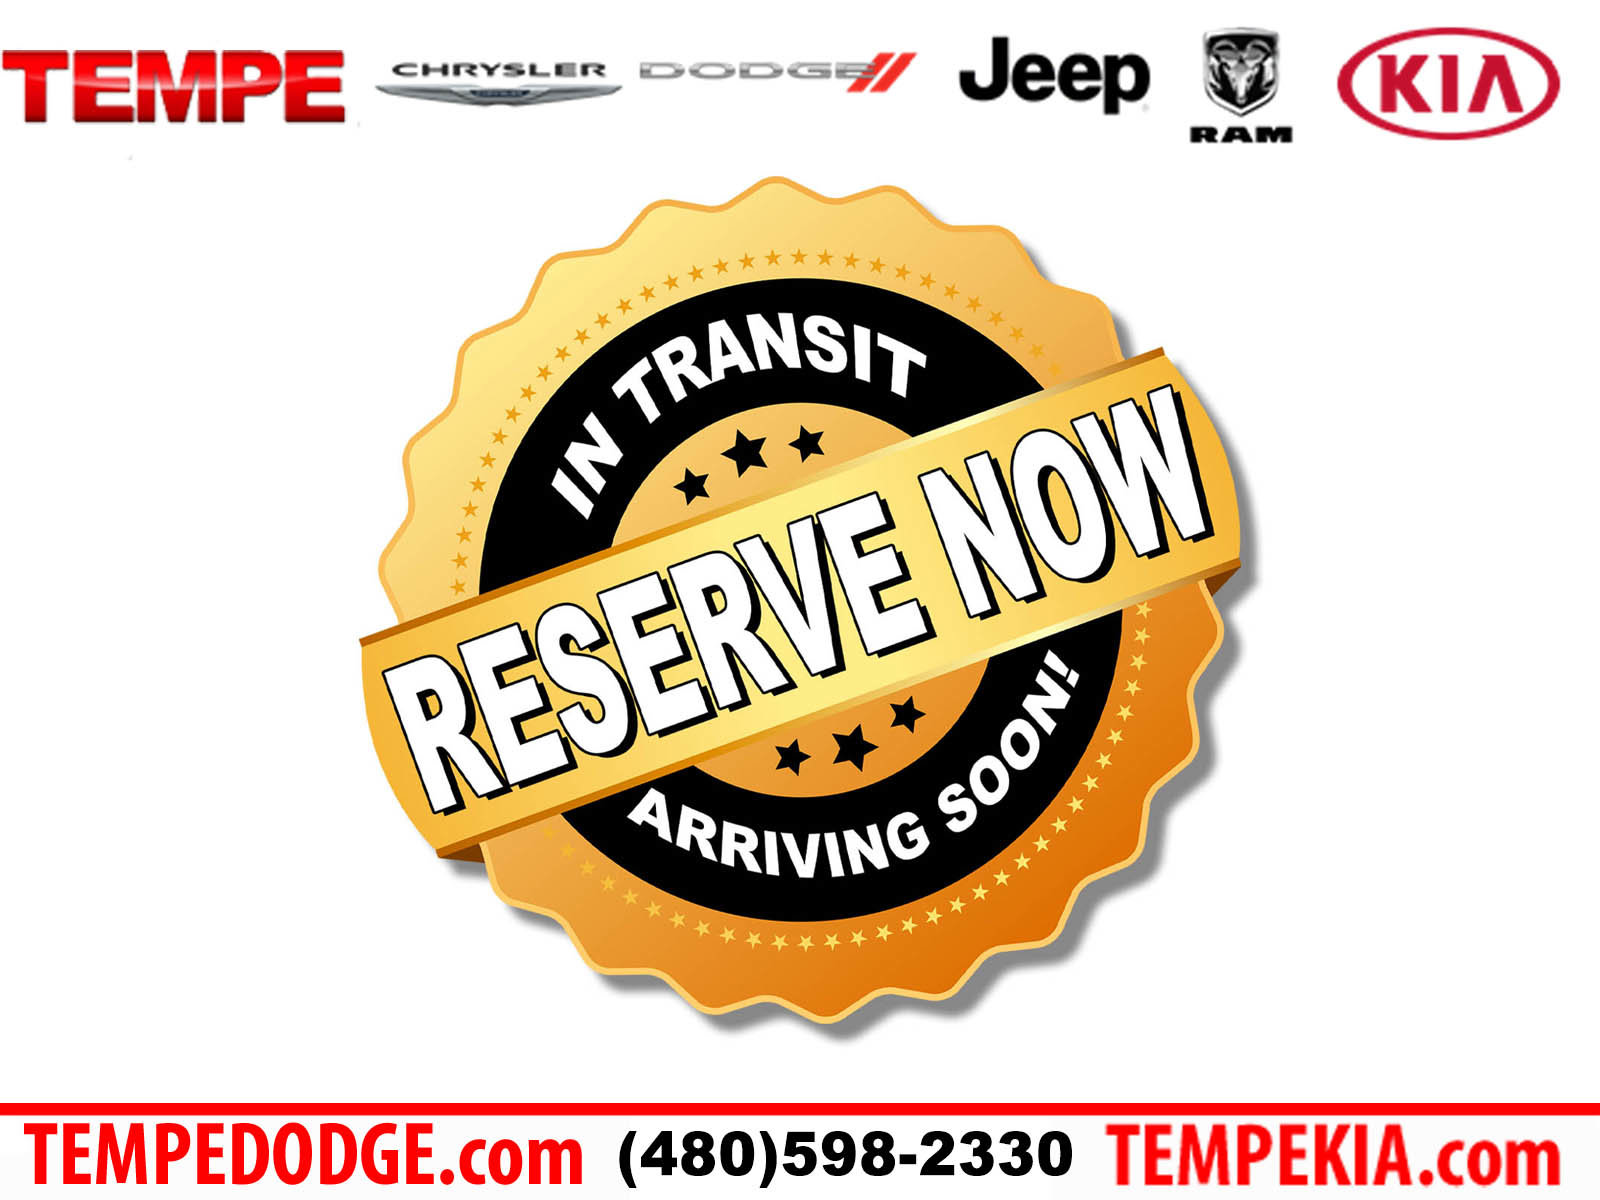 Used Kia Optima Tempe Az